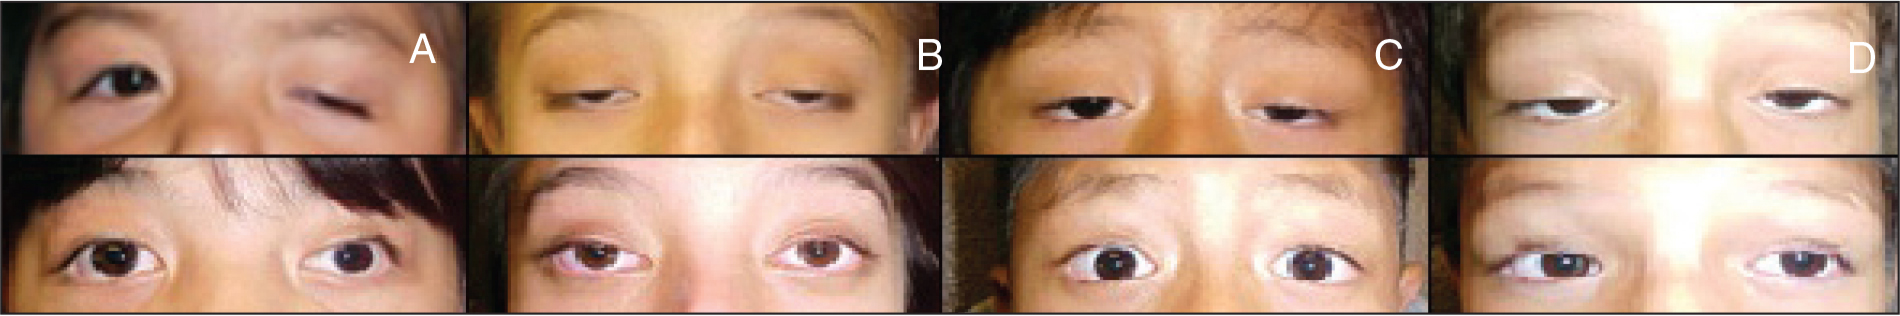 Preoperative (upper row) and postoperative (lower row) pictures of the patients with the longest follow-up. (A) 96 months, (B) 67 months, (C) 38 months, and (D) 56 months.